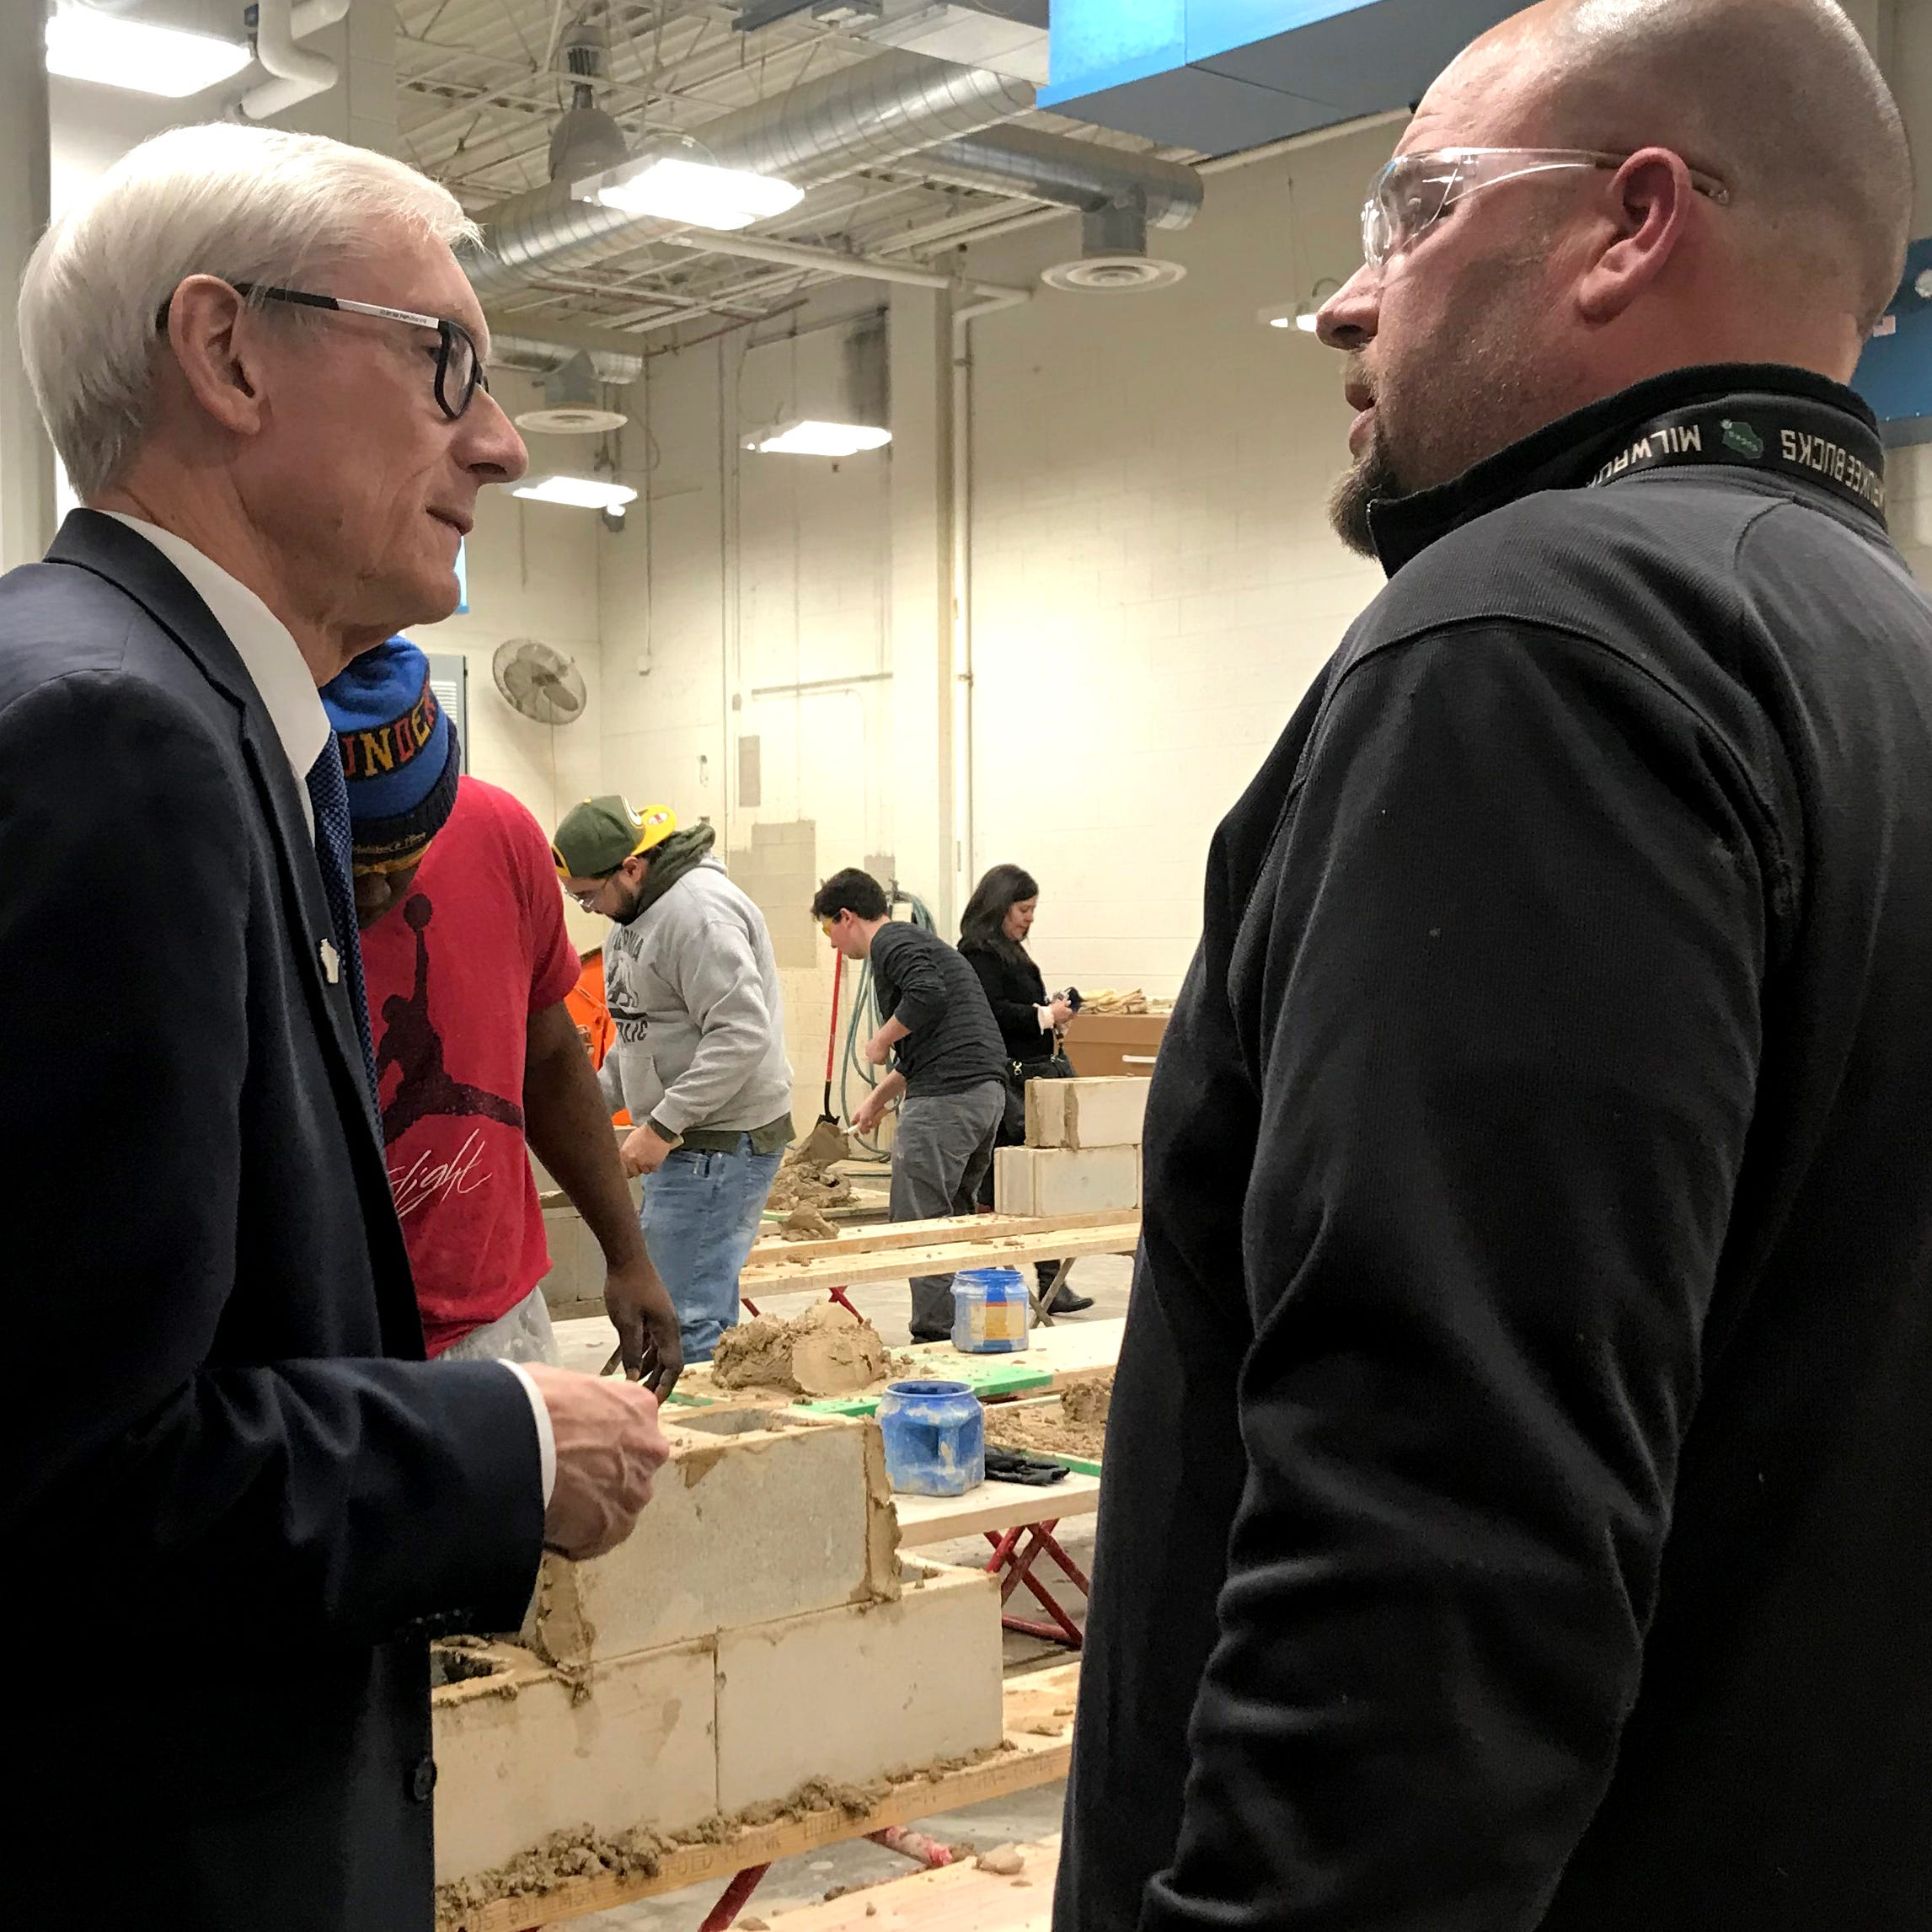 Wisconsin would face $2 billion shortfall at the start of the next budget under Gov. Tony Evers' plan